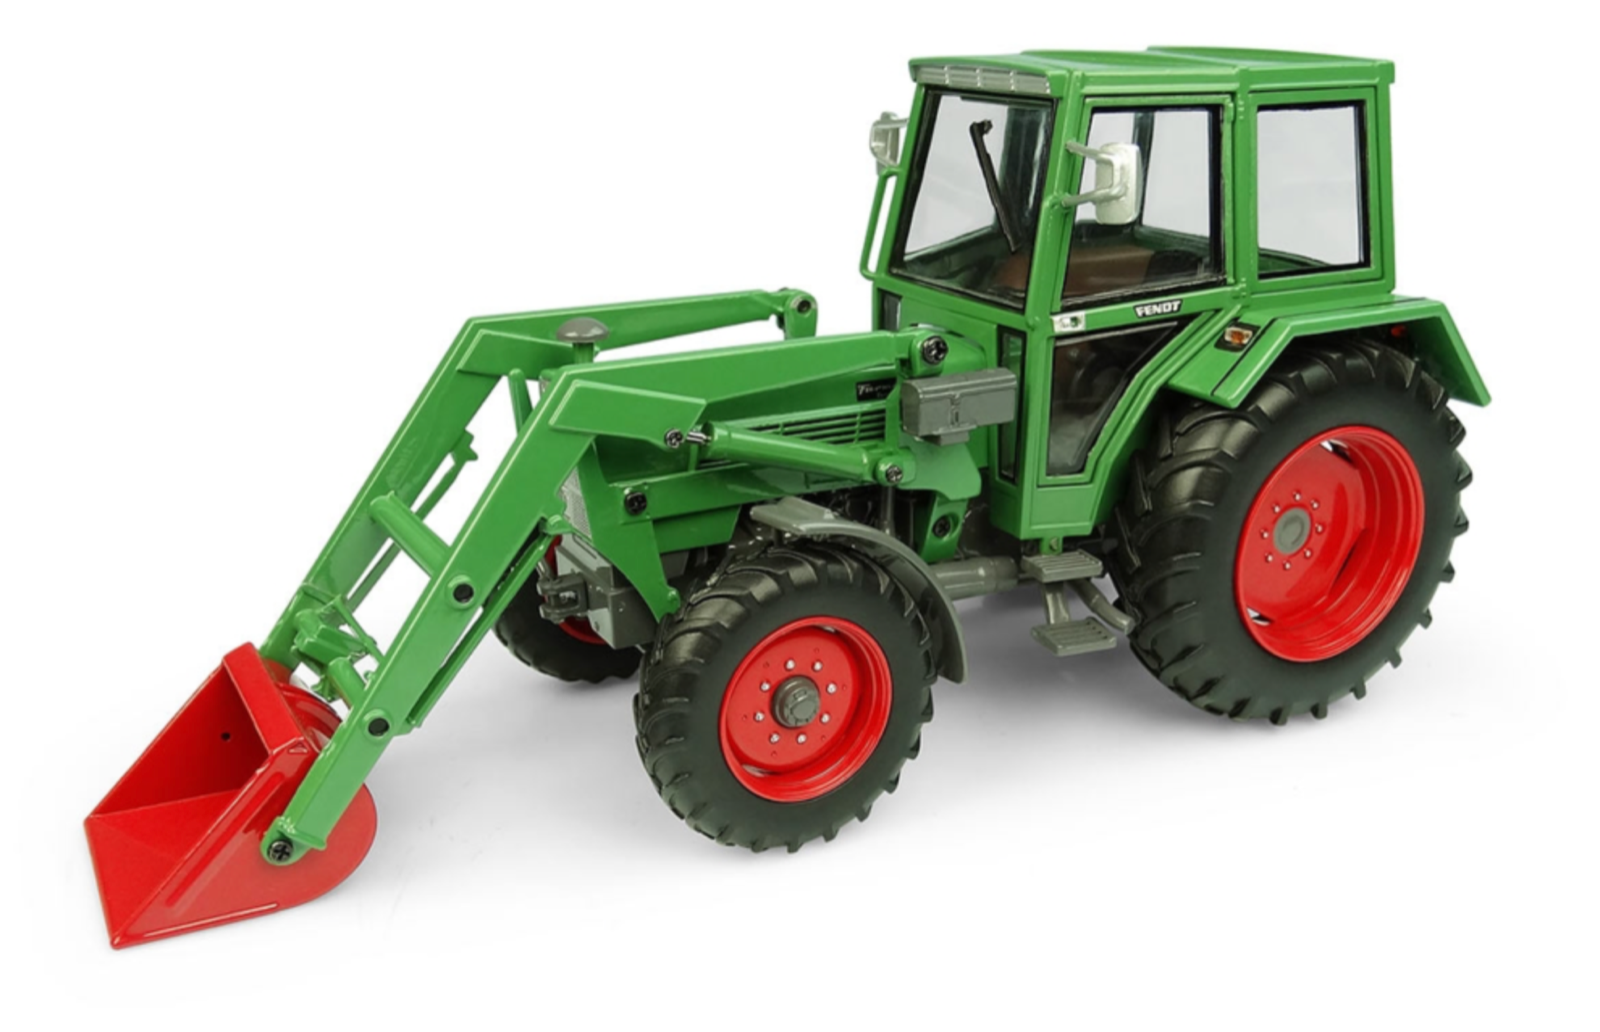 UNIVERSAL HOBBIES 5251 1:32 SCALE FENDT FARMER 108LS WITH CAB AND LOADER